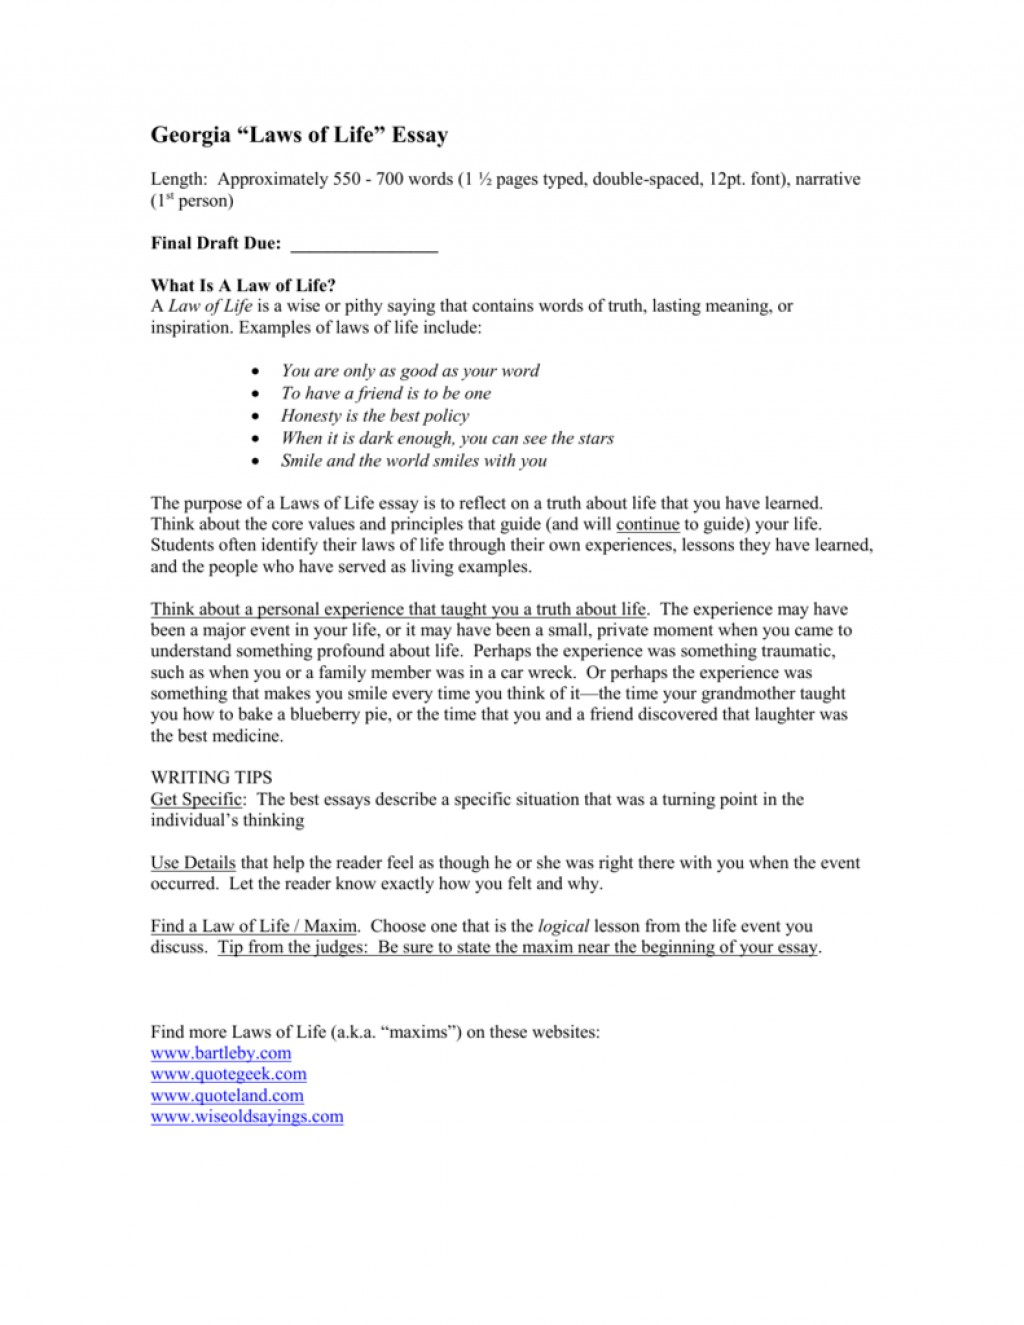 005 008063696 1 Laws Of Life Essays Impressive Essay Examples 2012 Large